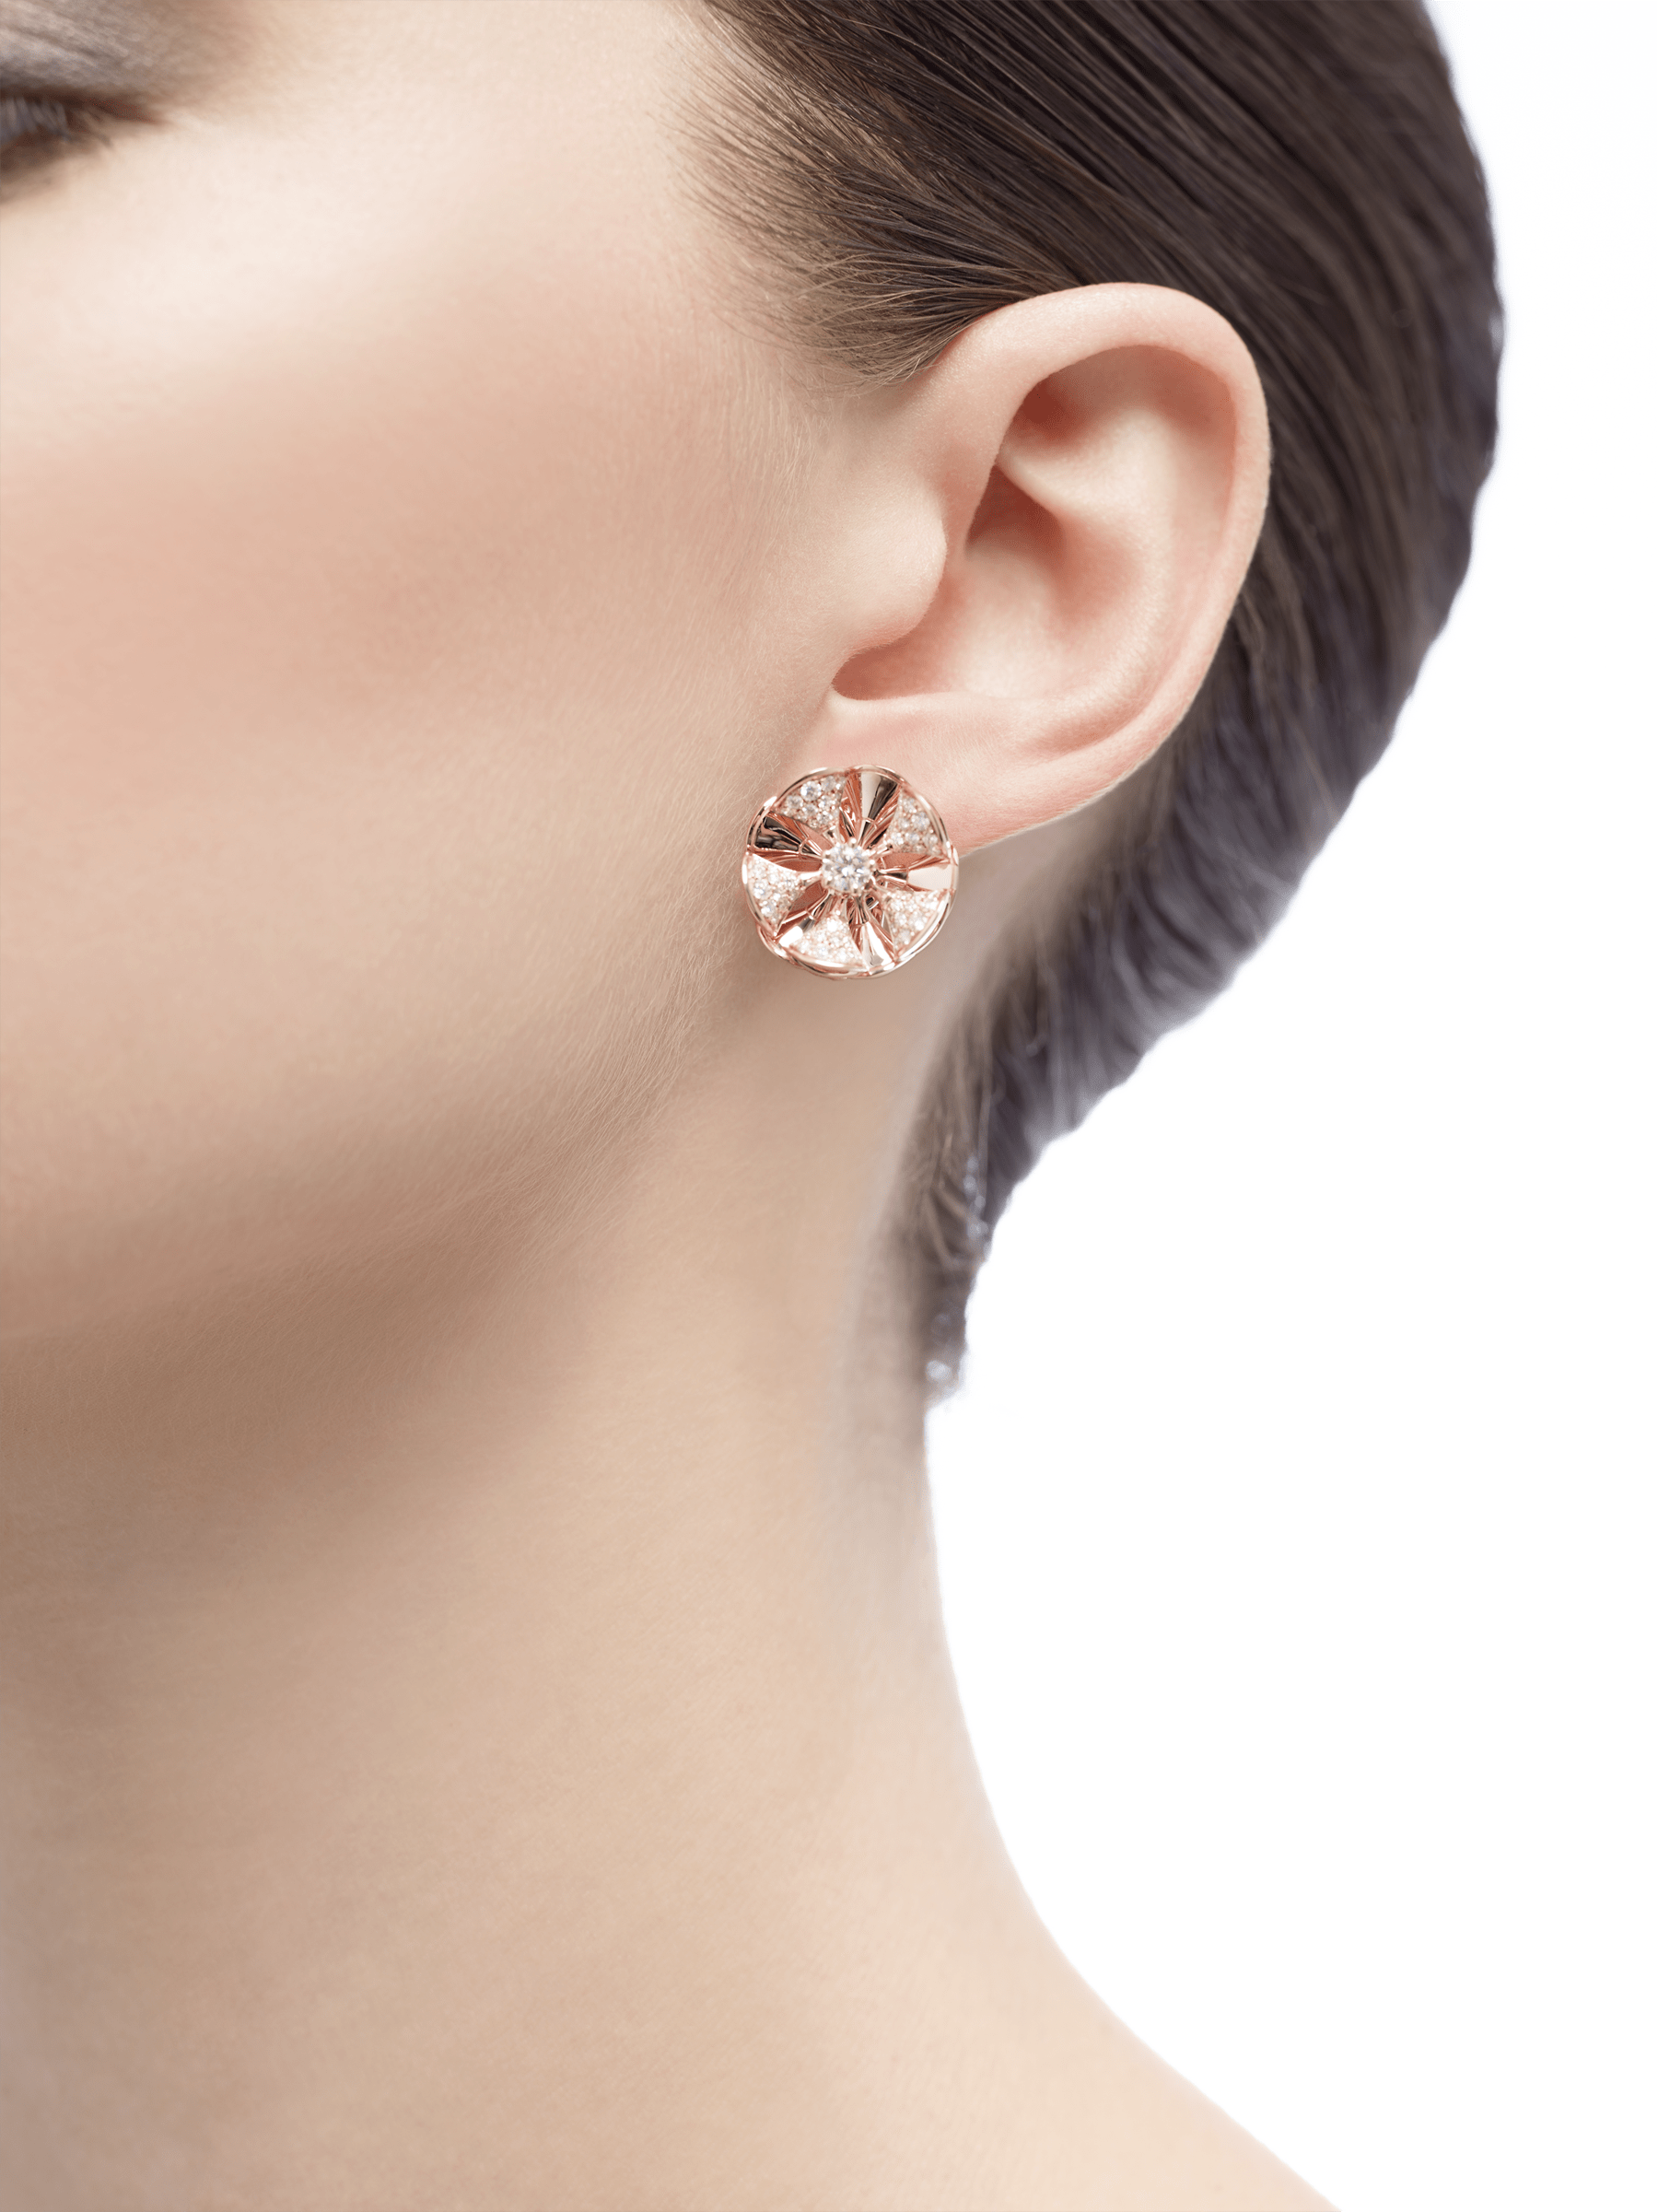 DIVAS' DREAM earrings in 18 kt rose gold set with a central diamond and pavé diamonds. 350784 image 4